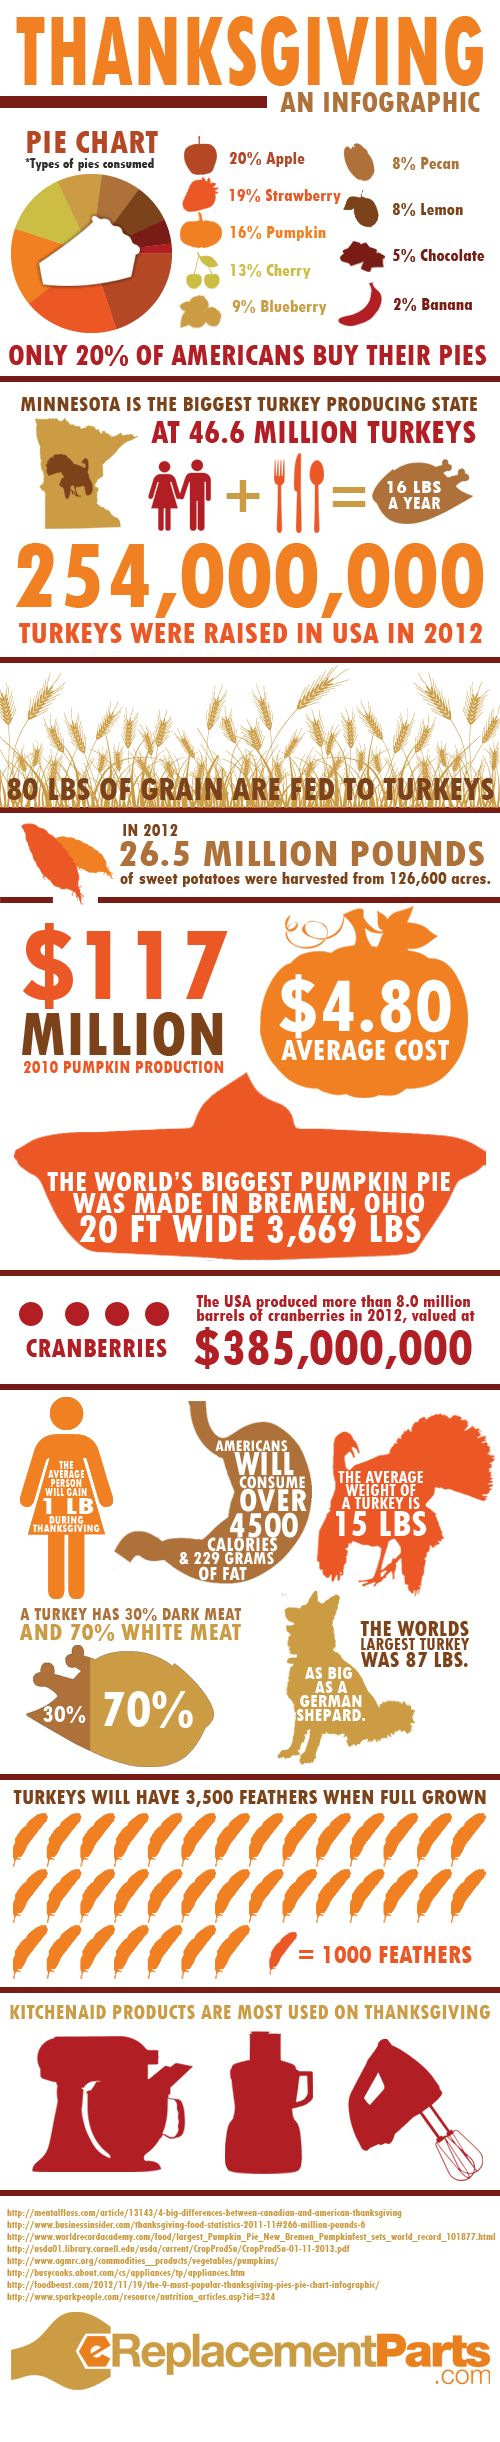 infographic,thanksgiving